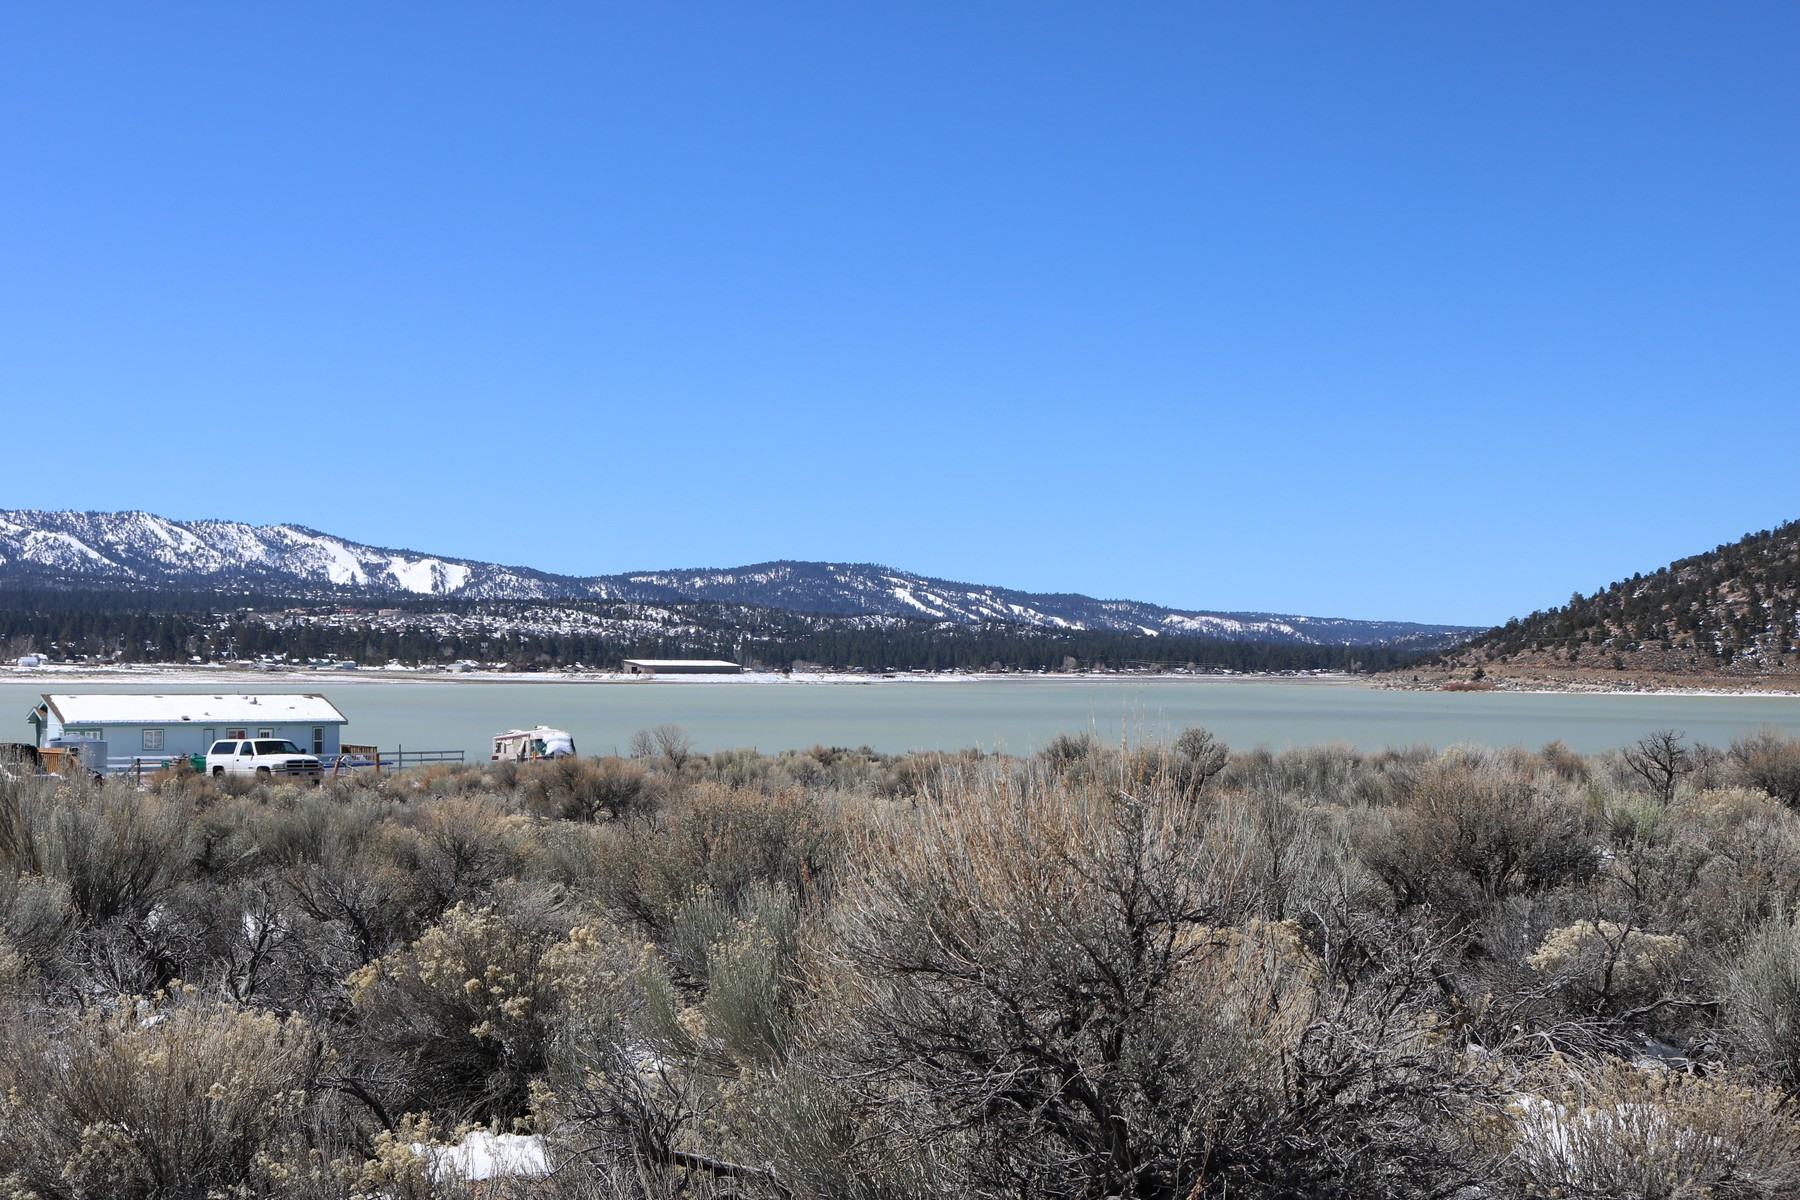 Land for Sale at 0 Camino Bosque, Baldwin Lake, California, 92314 0 Camino Bosque Big Bear City, California 92314 United States